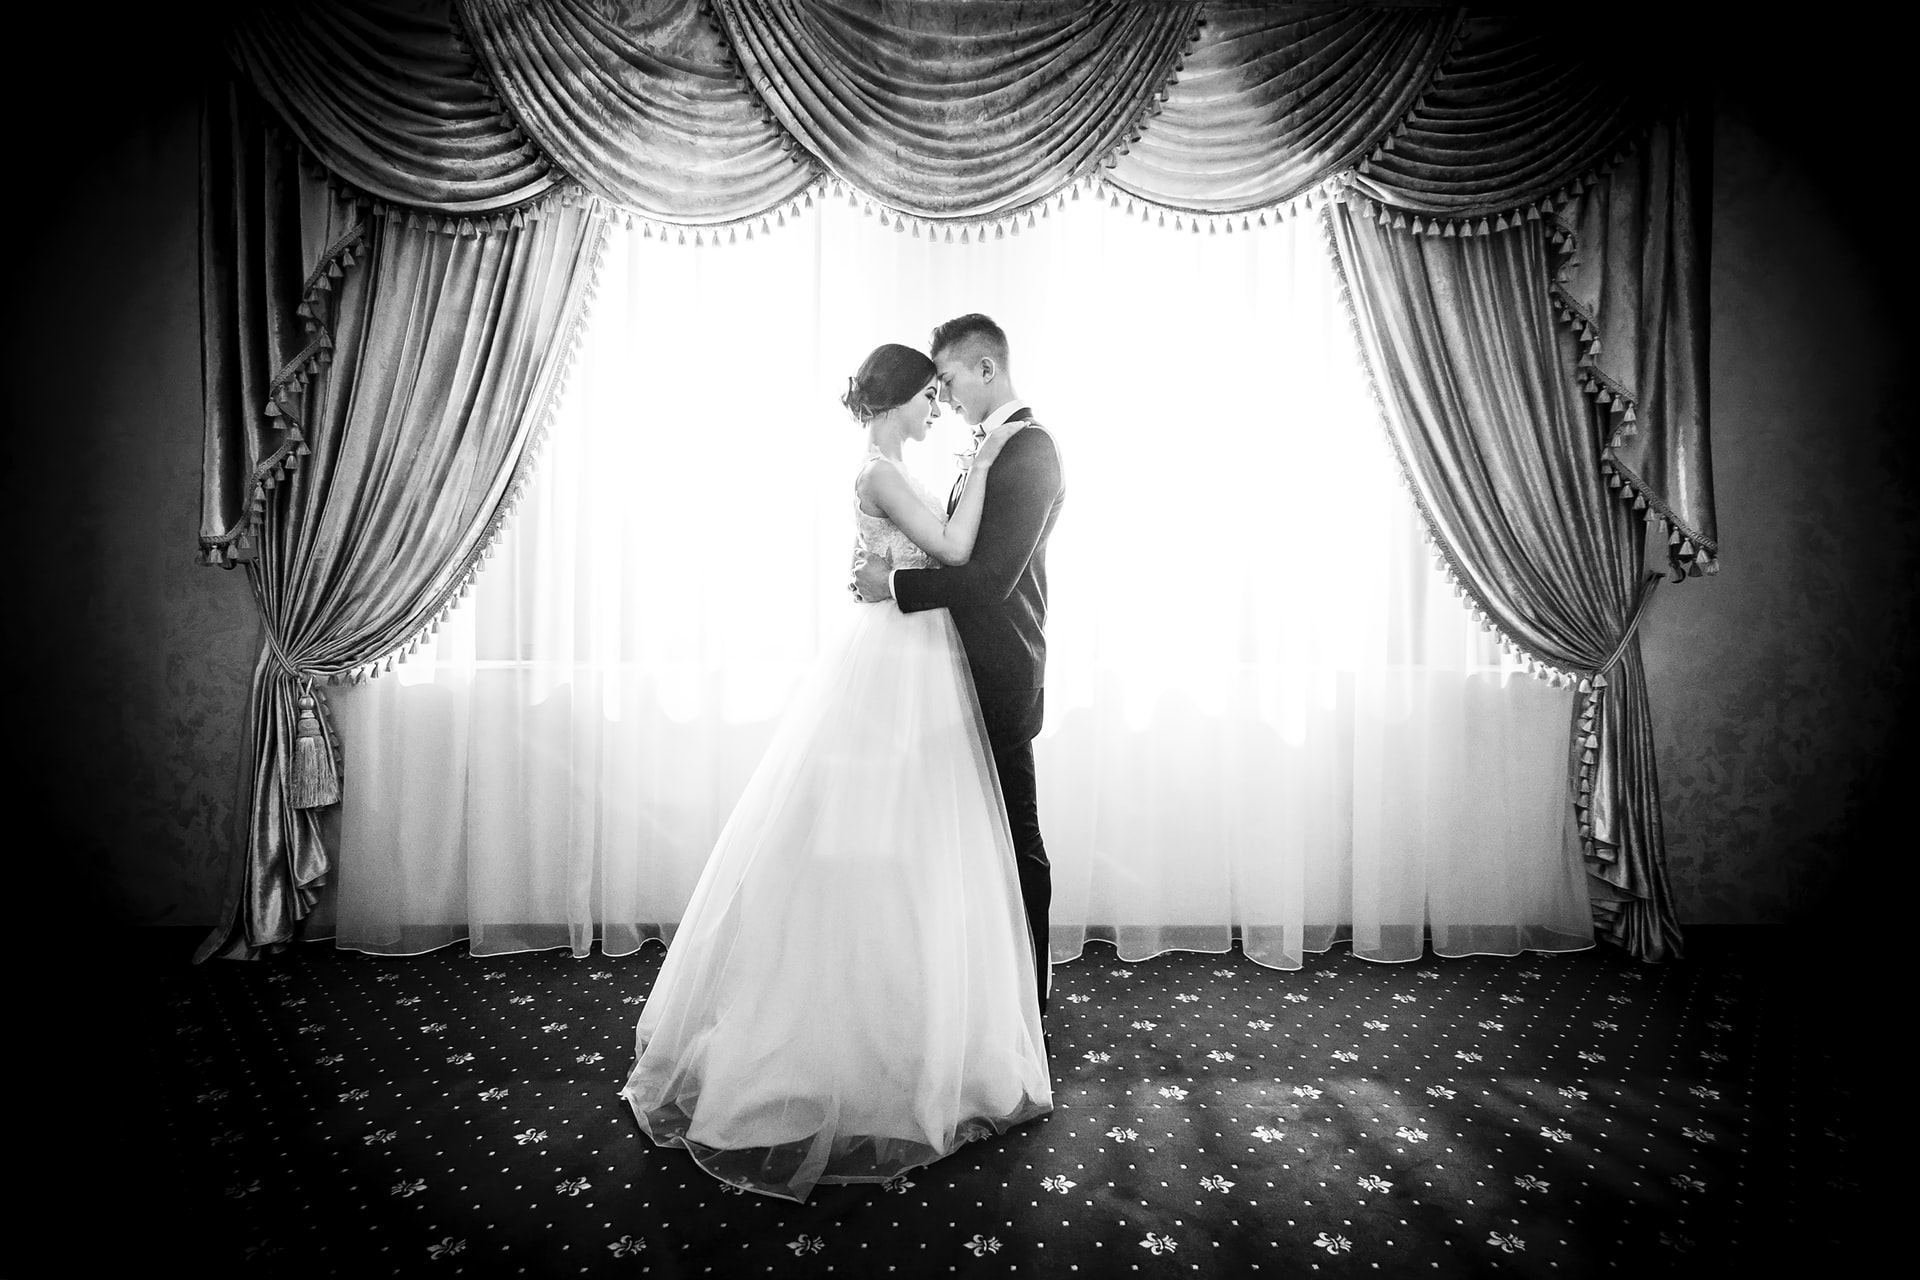 CHECKLIST: Get proactive on wedding planning in the face of Covid-19